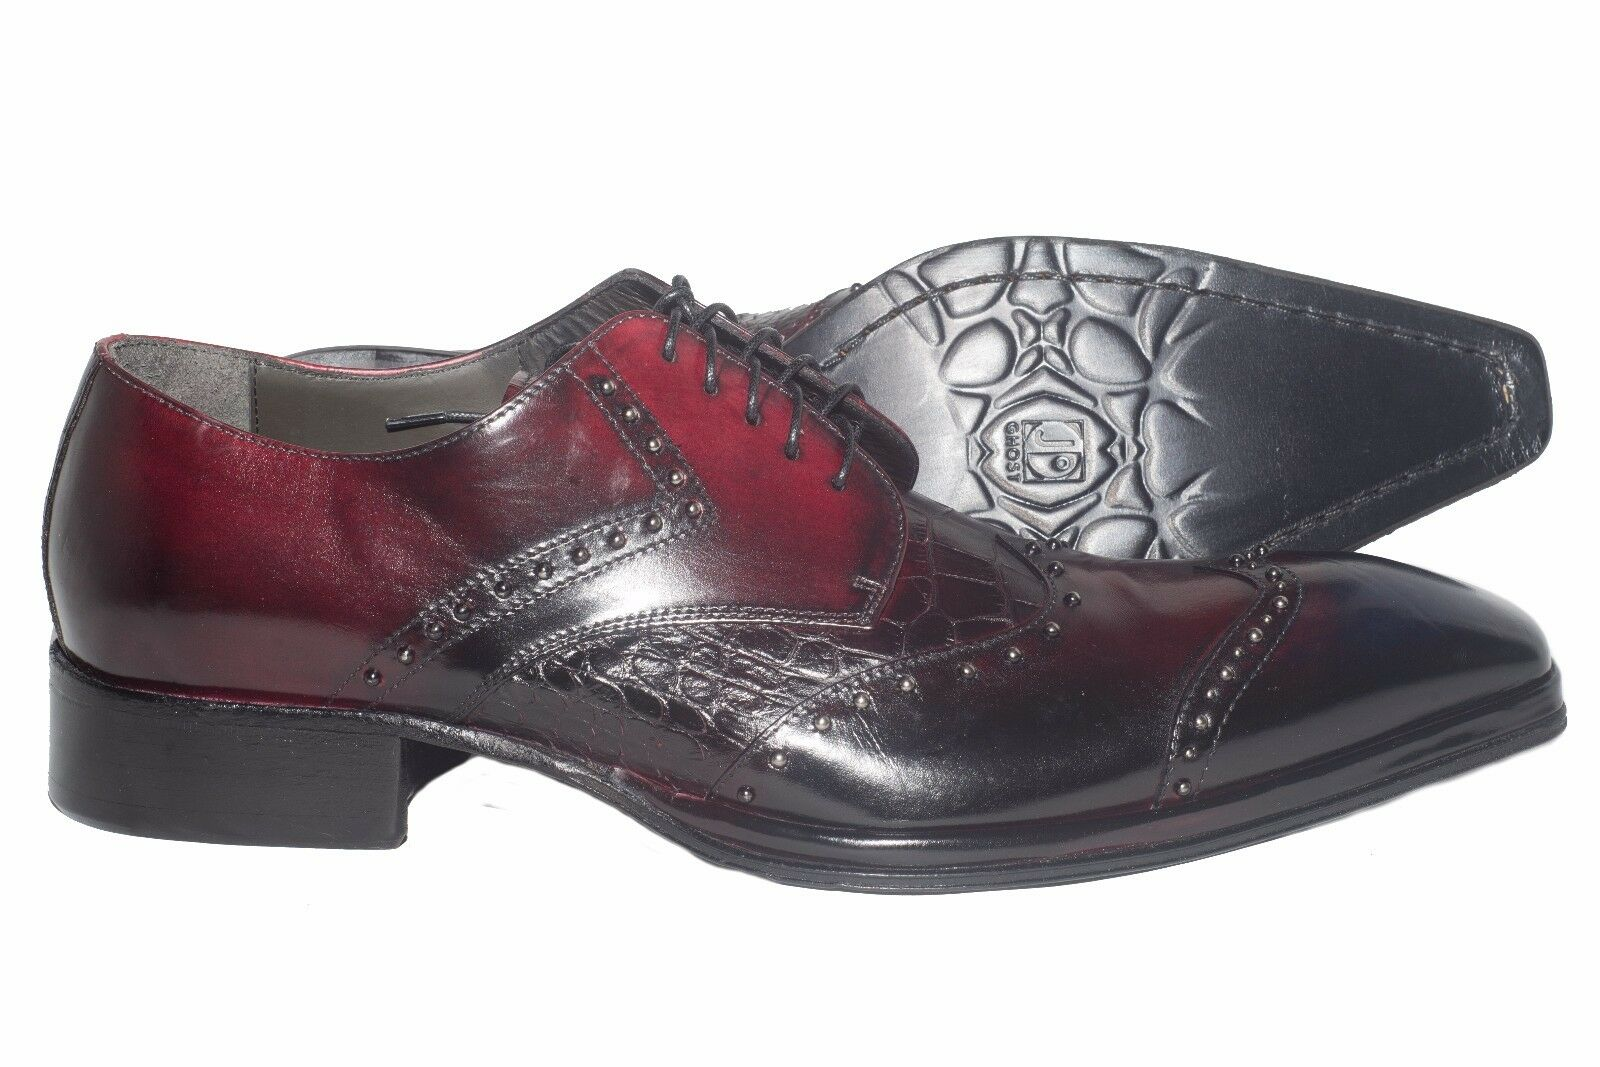 Jo Ghost 738 Italian mens burgundy lace up shoes with metal studs